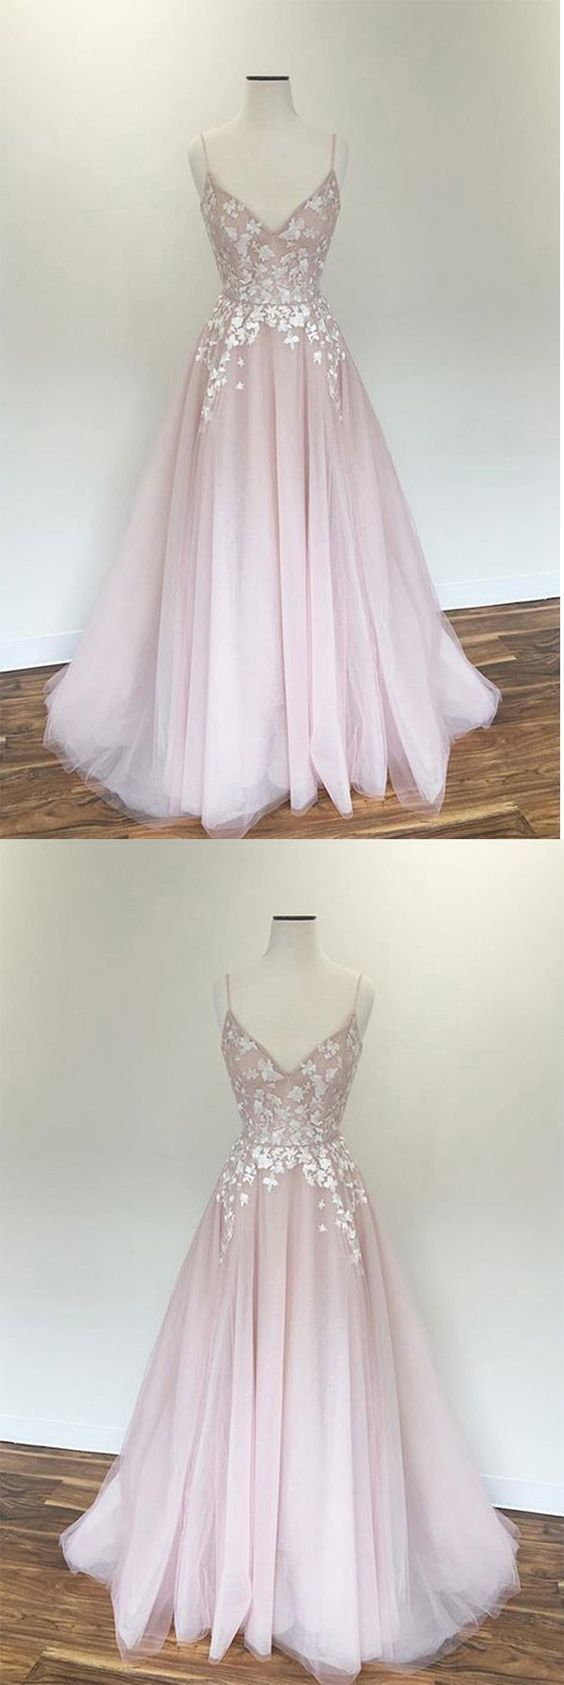 Light Pink V Neck Tulle Long Spaghetti Straps Appliques Prom Dress,M0616